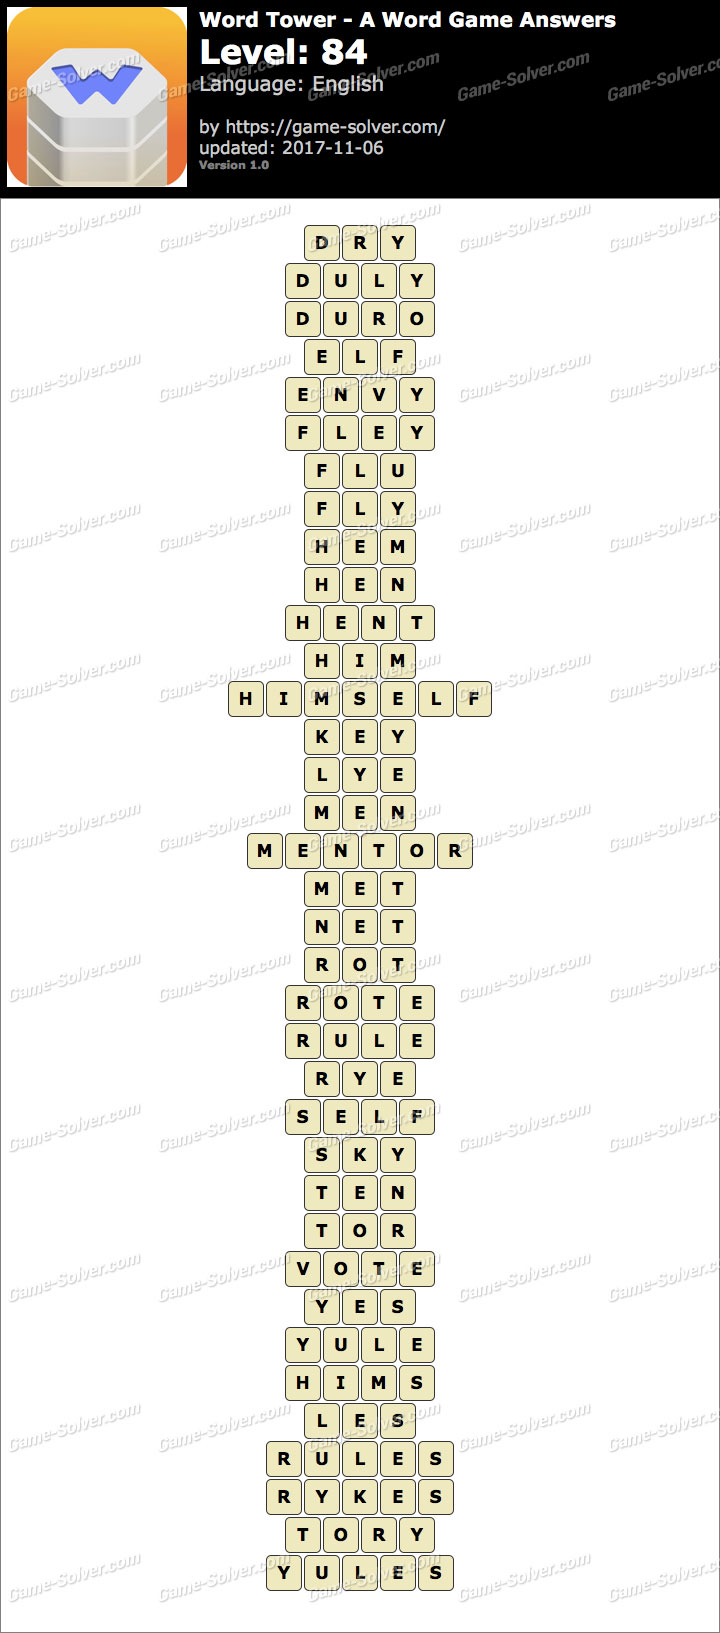 Word Tower Level 84 Answers